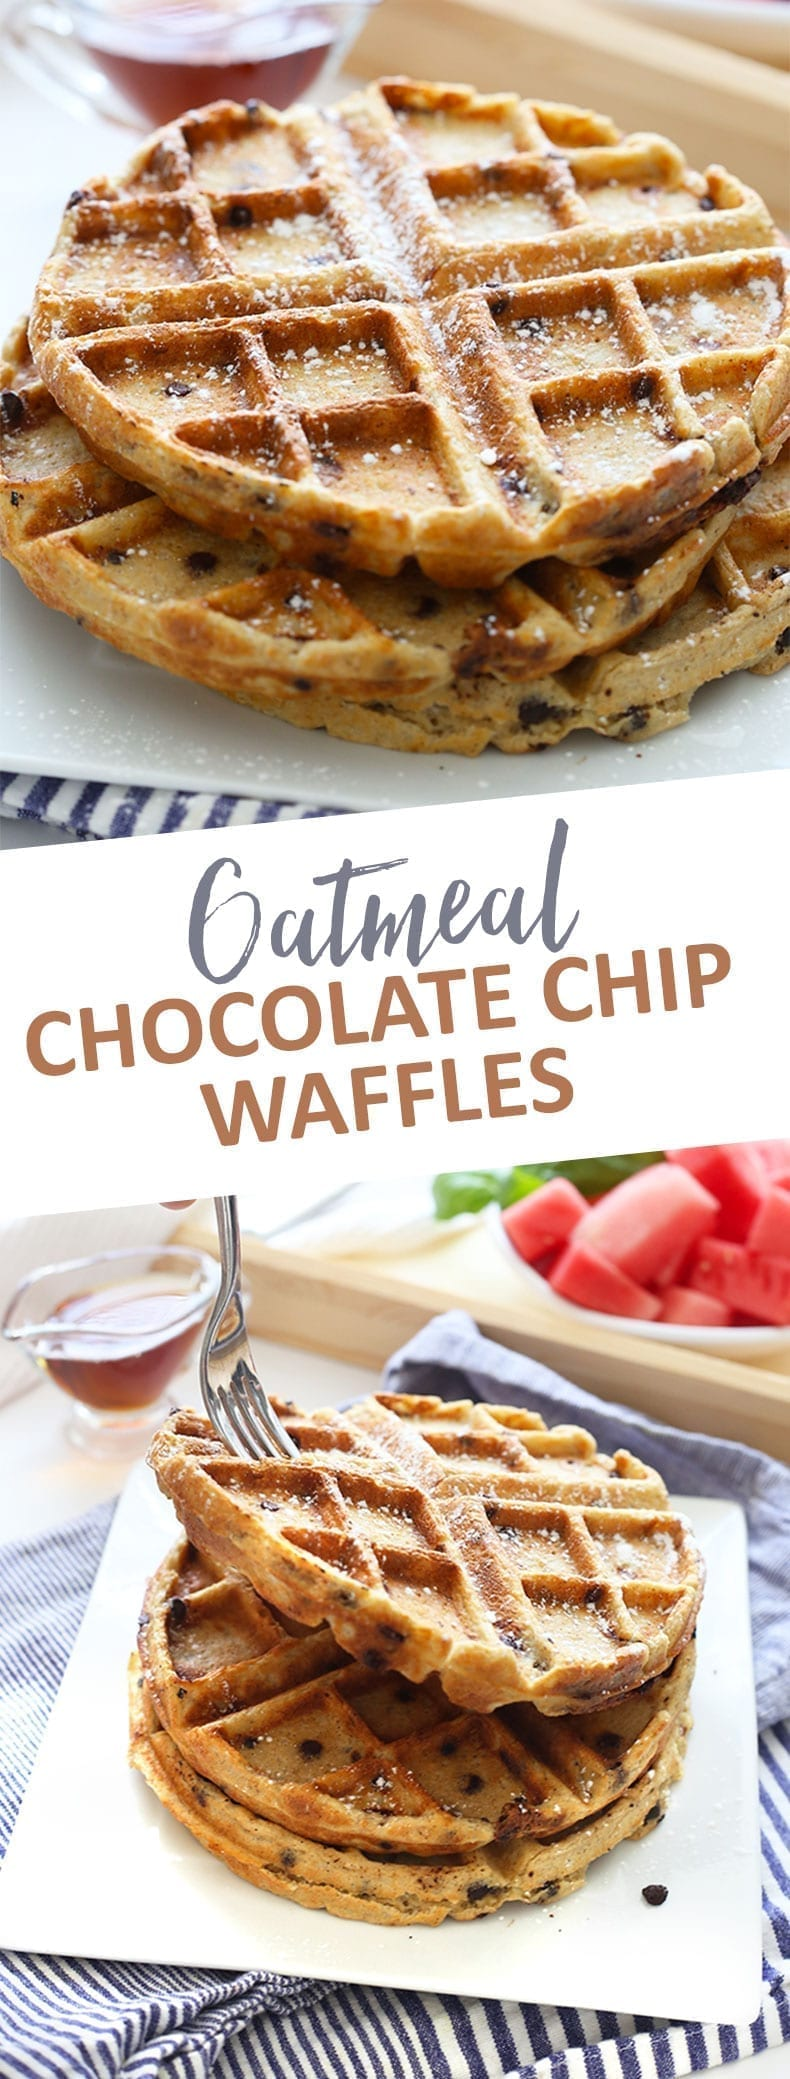 Sweet and crispy Oatmeal Chocolate Chip Waffles for the ultimate weekend brunch! These gluten-free and healthy waffles are made from wholesome ingredients. #oatmealwaffles #glutenfreewaffles